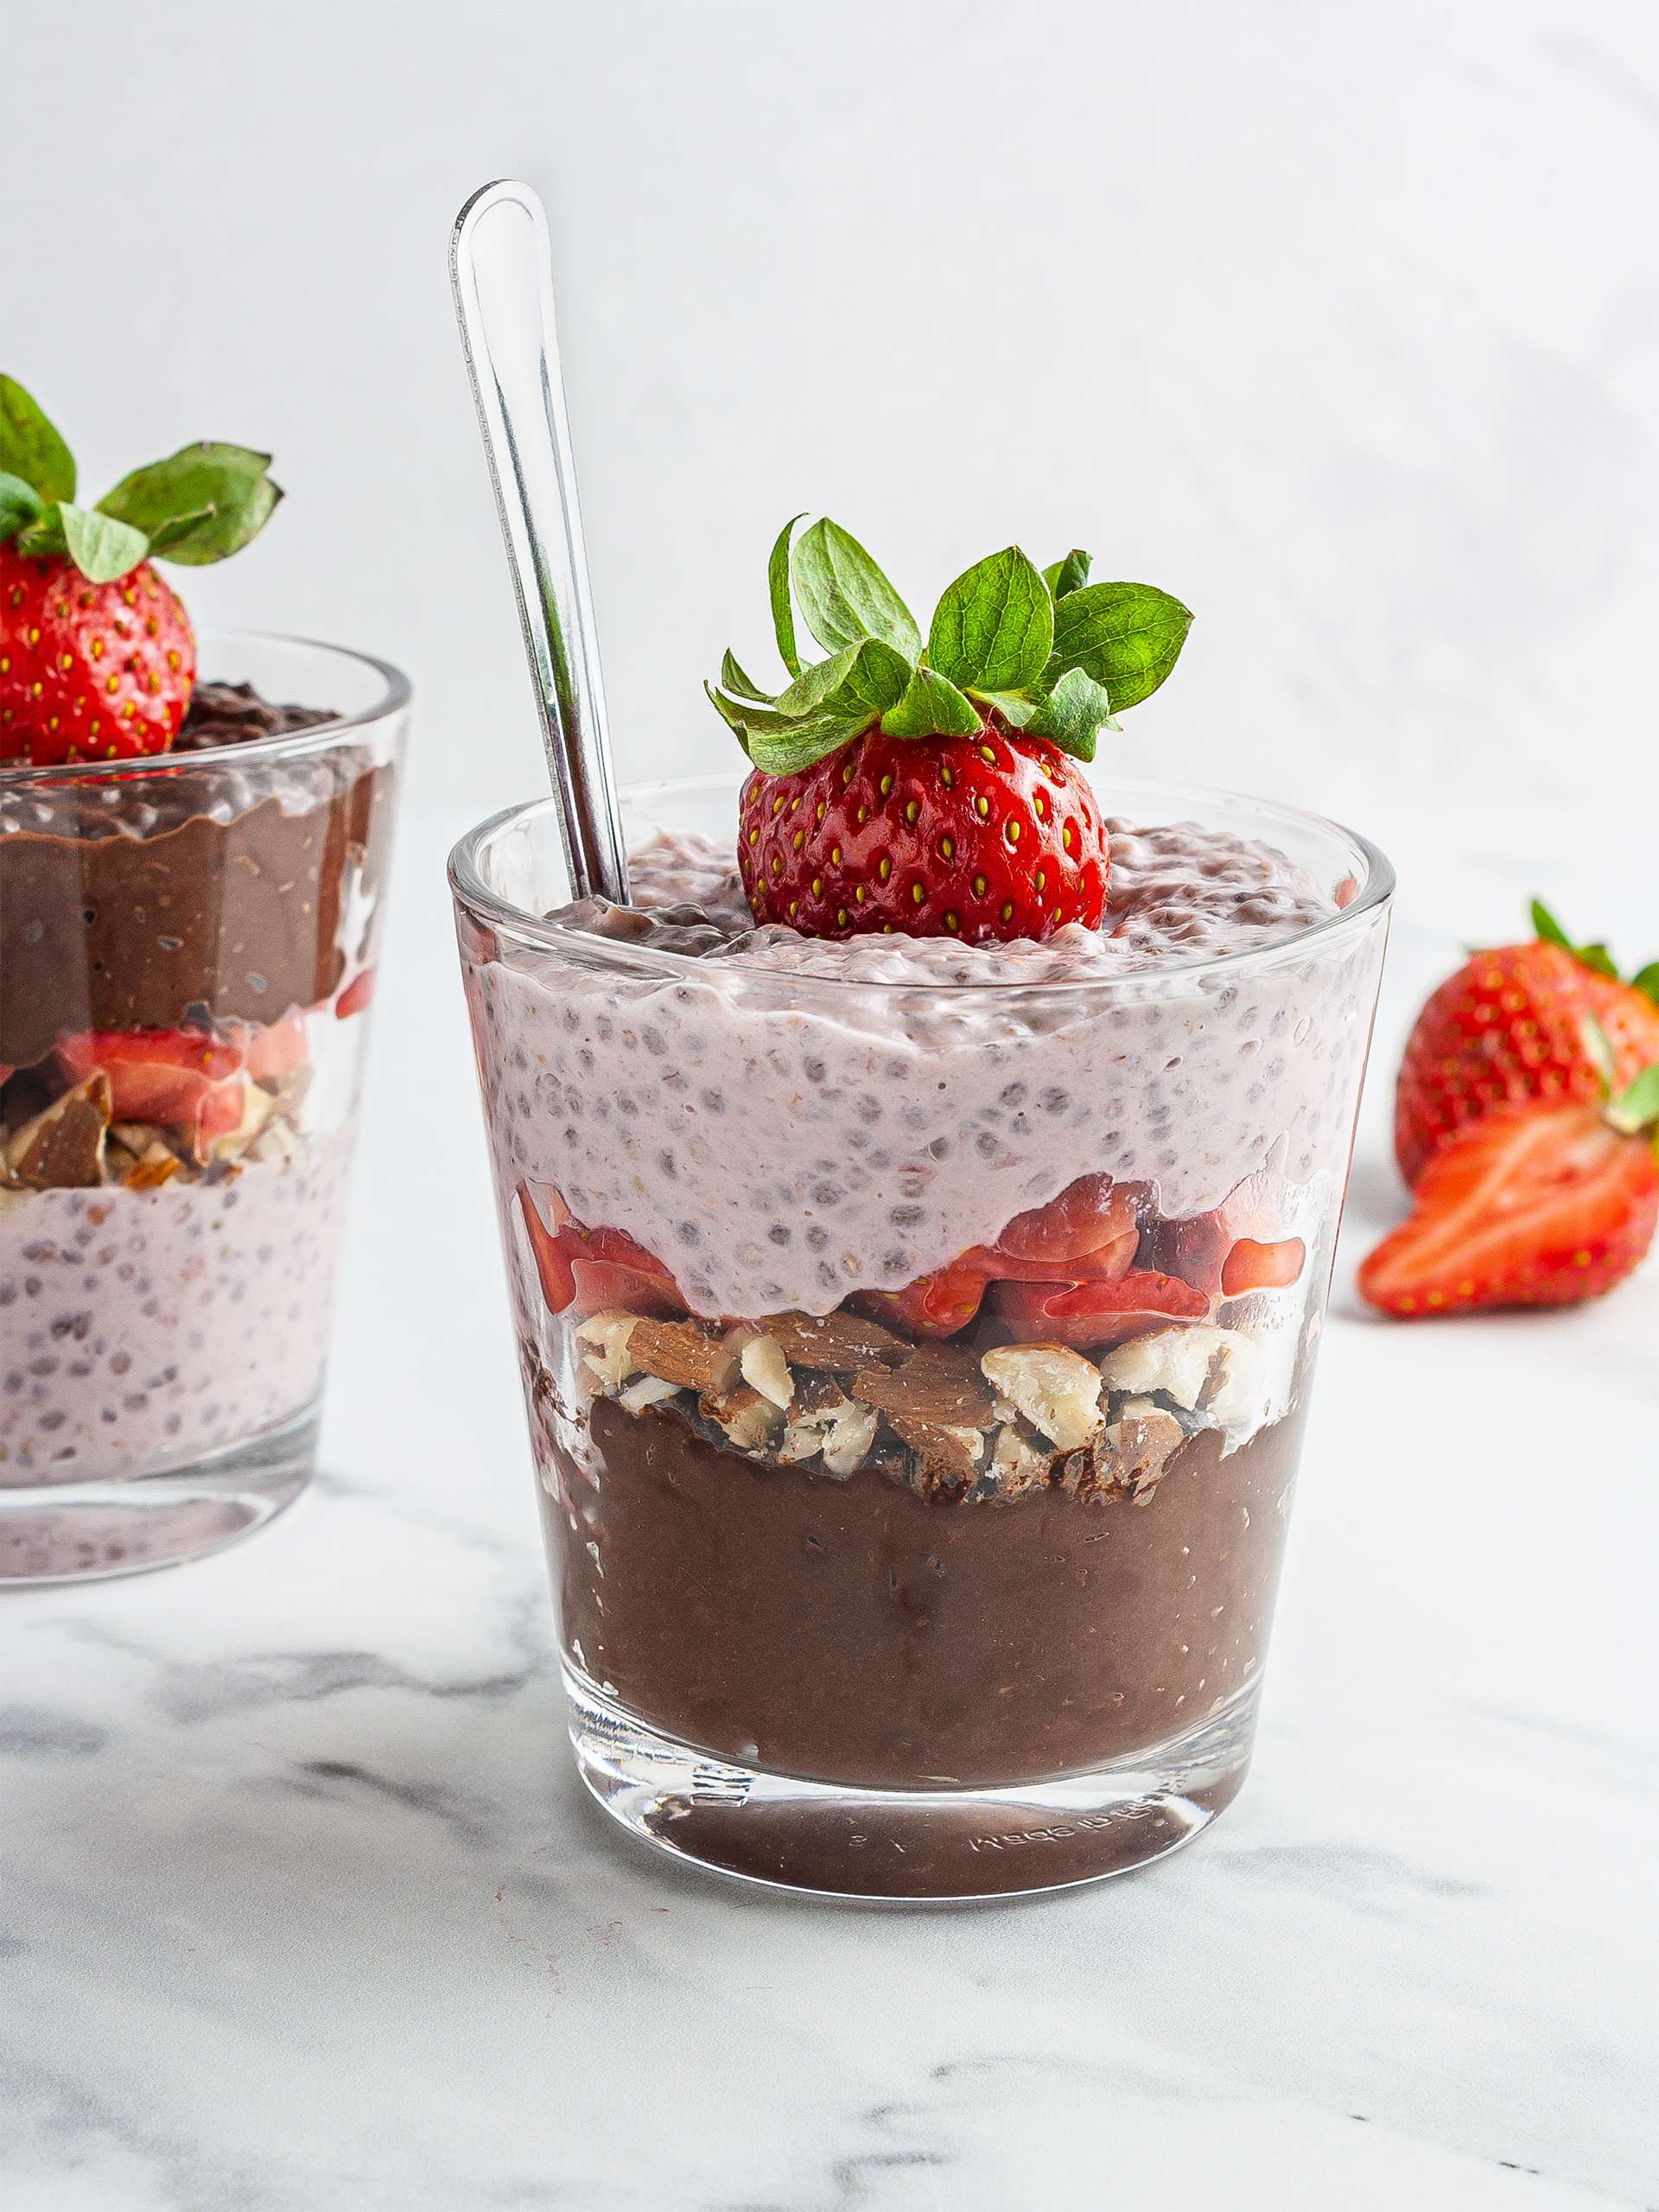 Vegan Chia Protein Pudding with Tofu Thumbnail